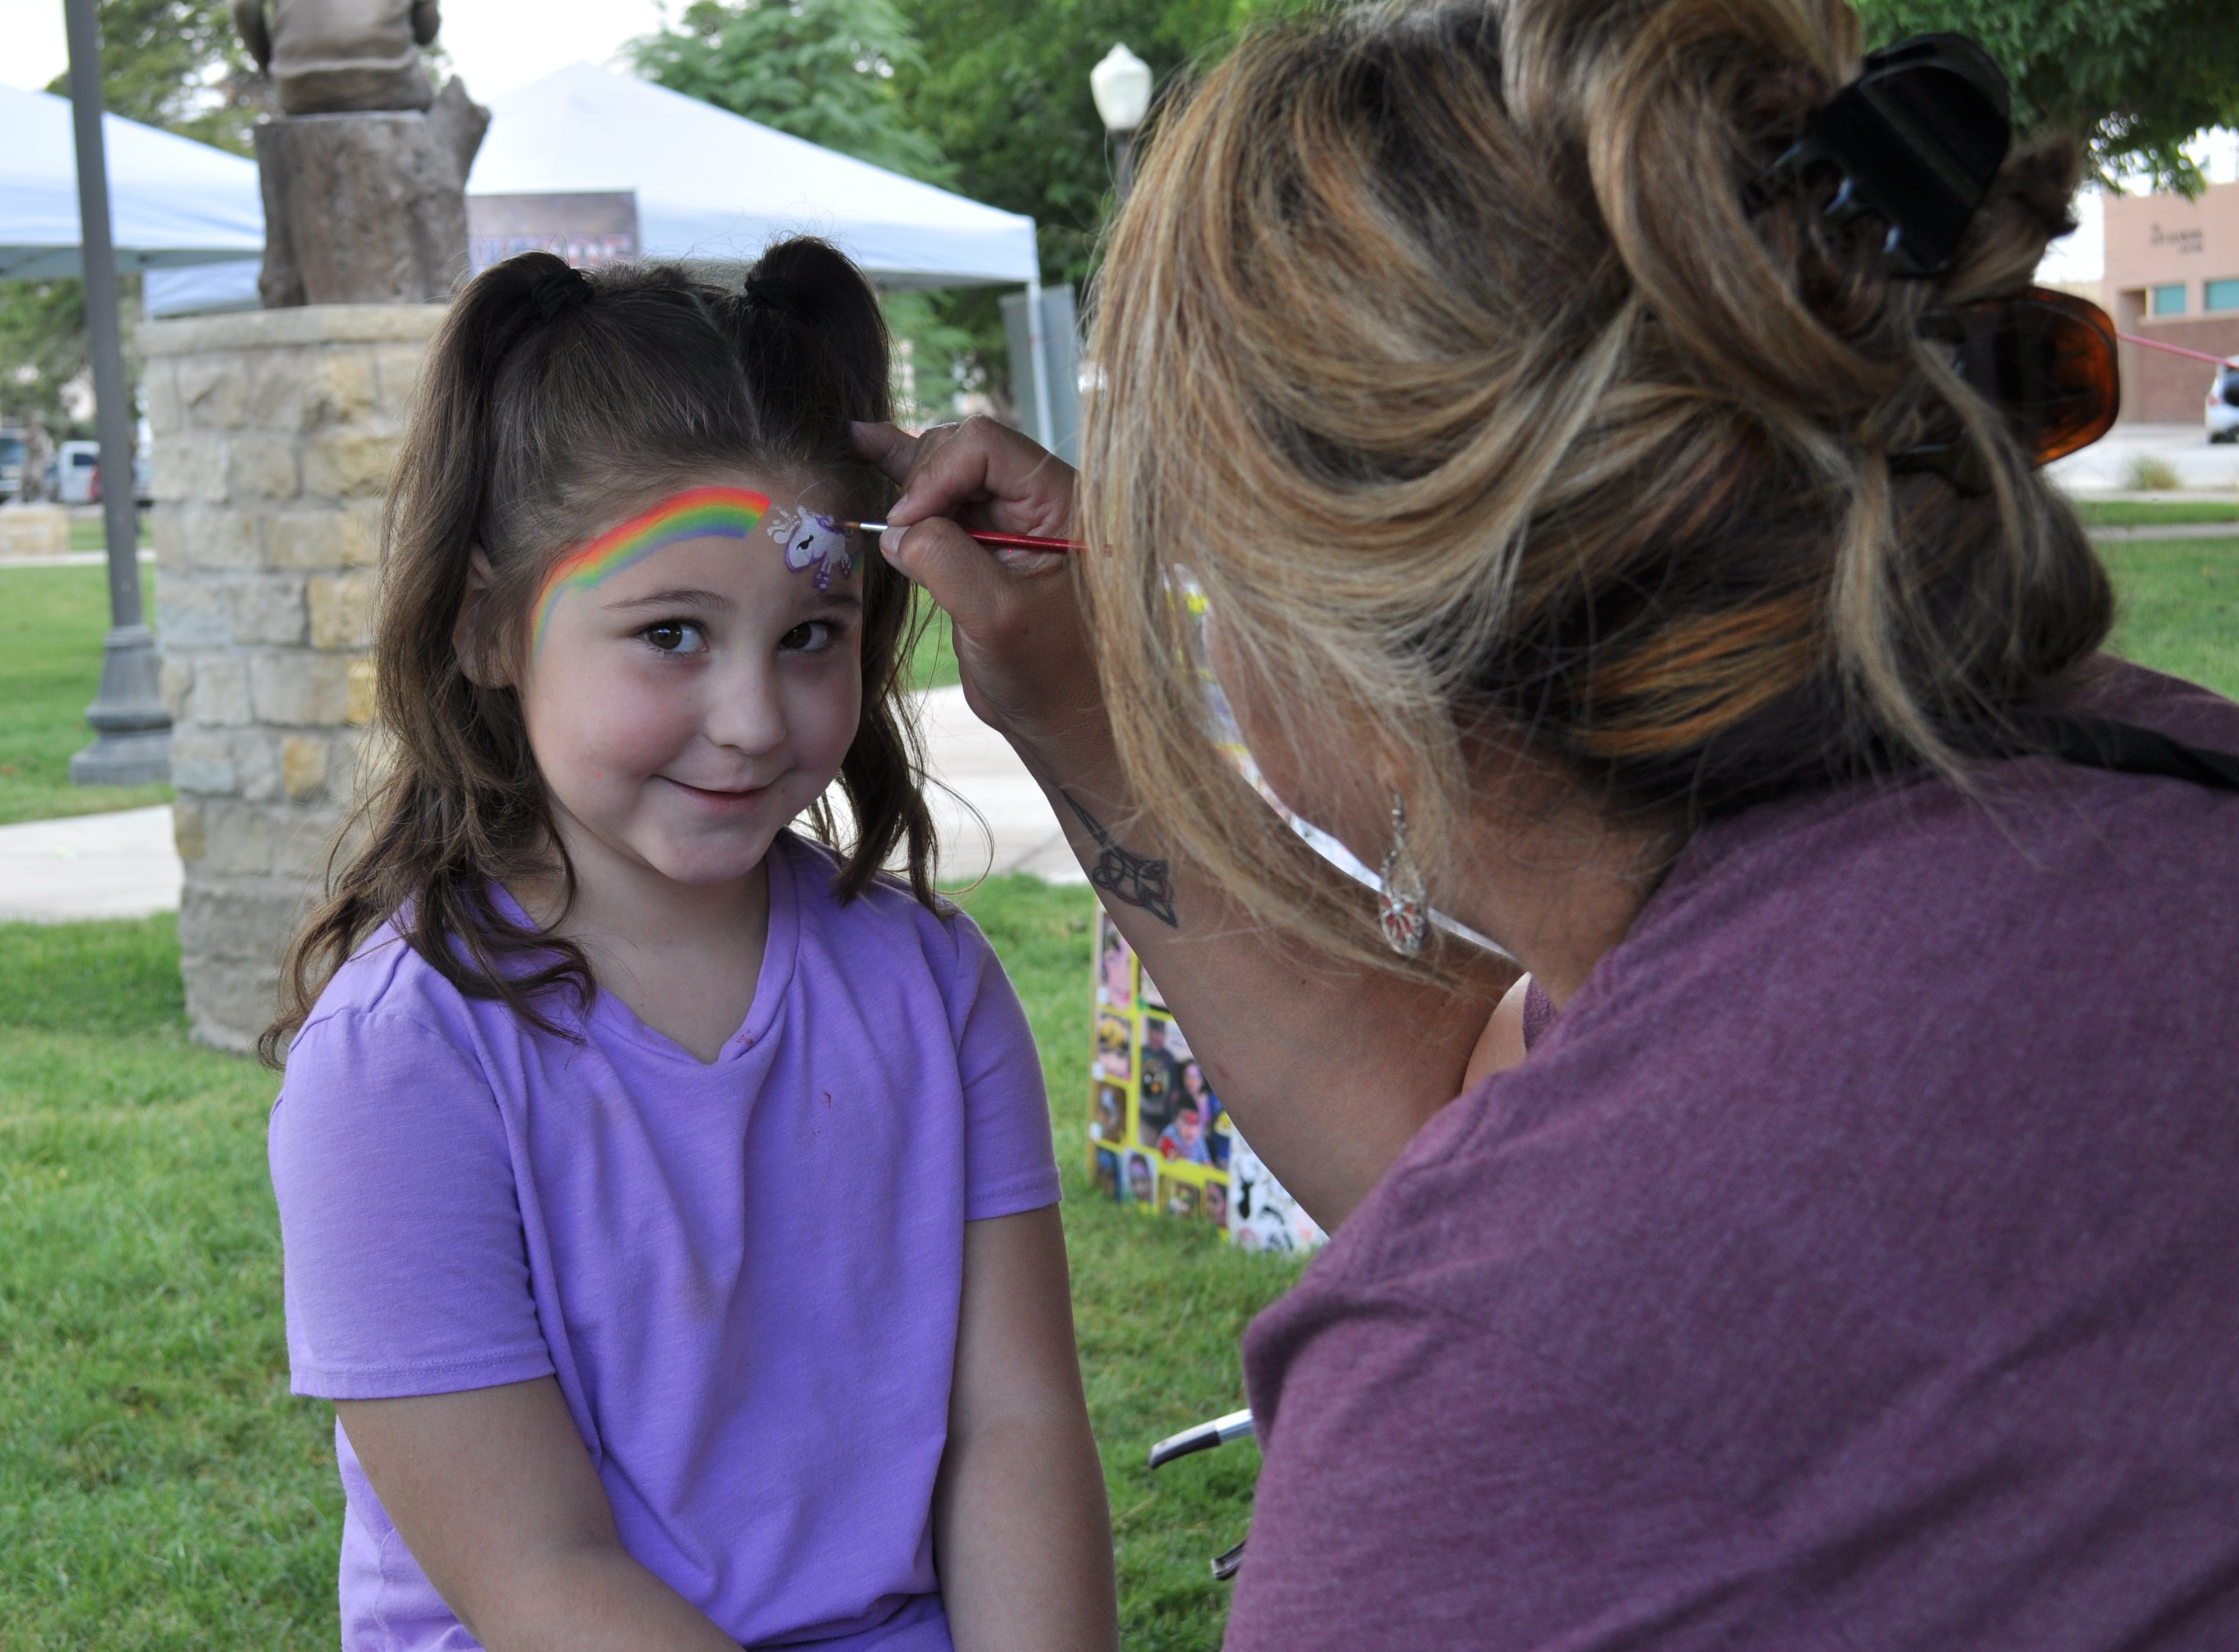 A young girls gets her face painted at the annual Heritage Fest in Carlsbad Sep. 15.